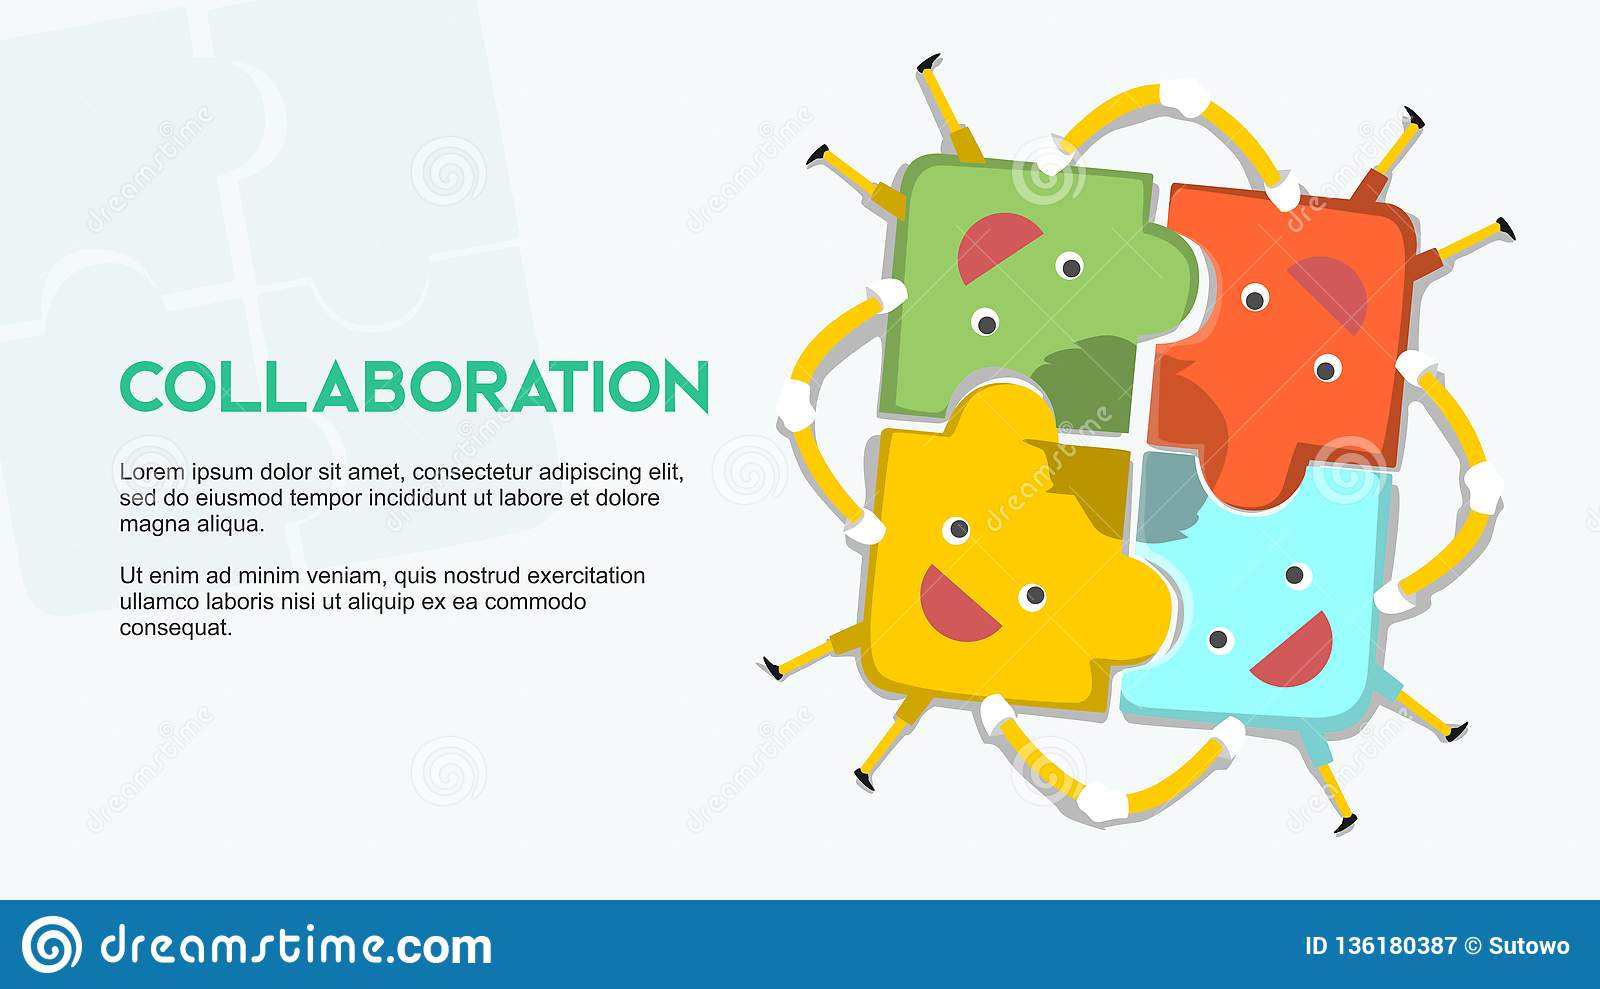 Collaboration Metaphor Cartoon Puzzle With Happy Face Hand In Hand